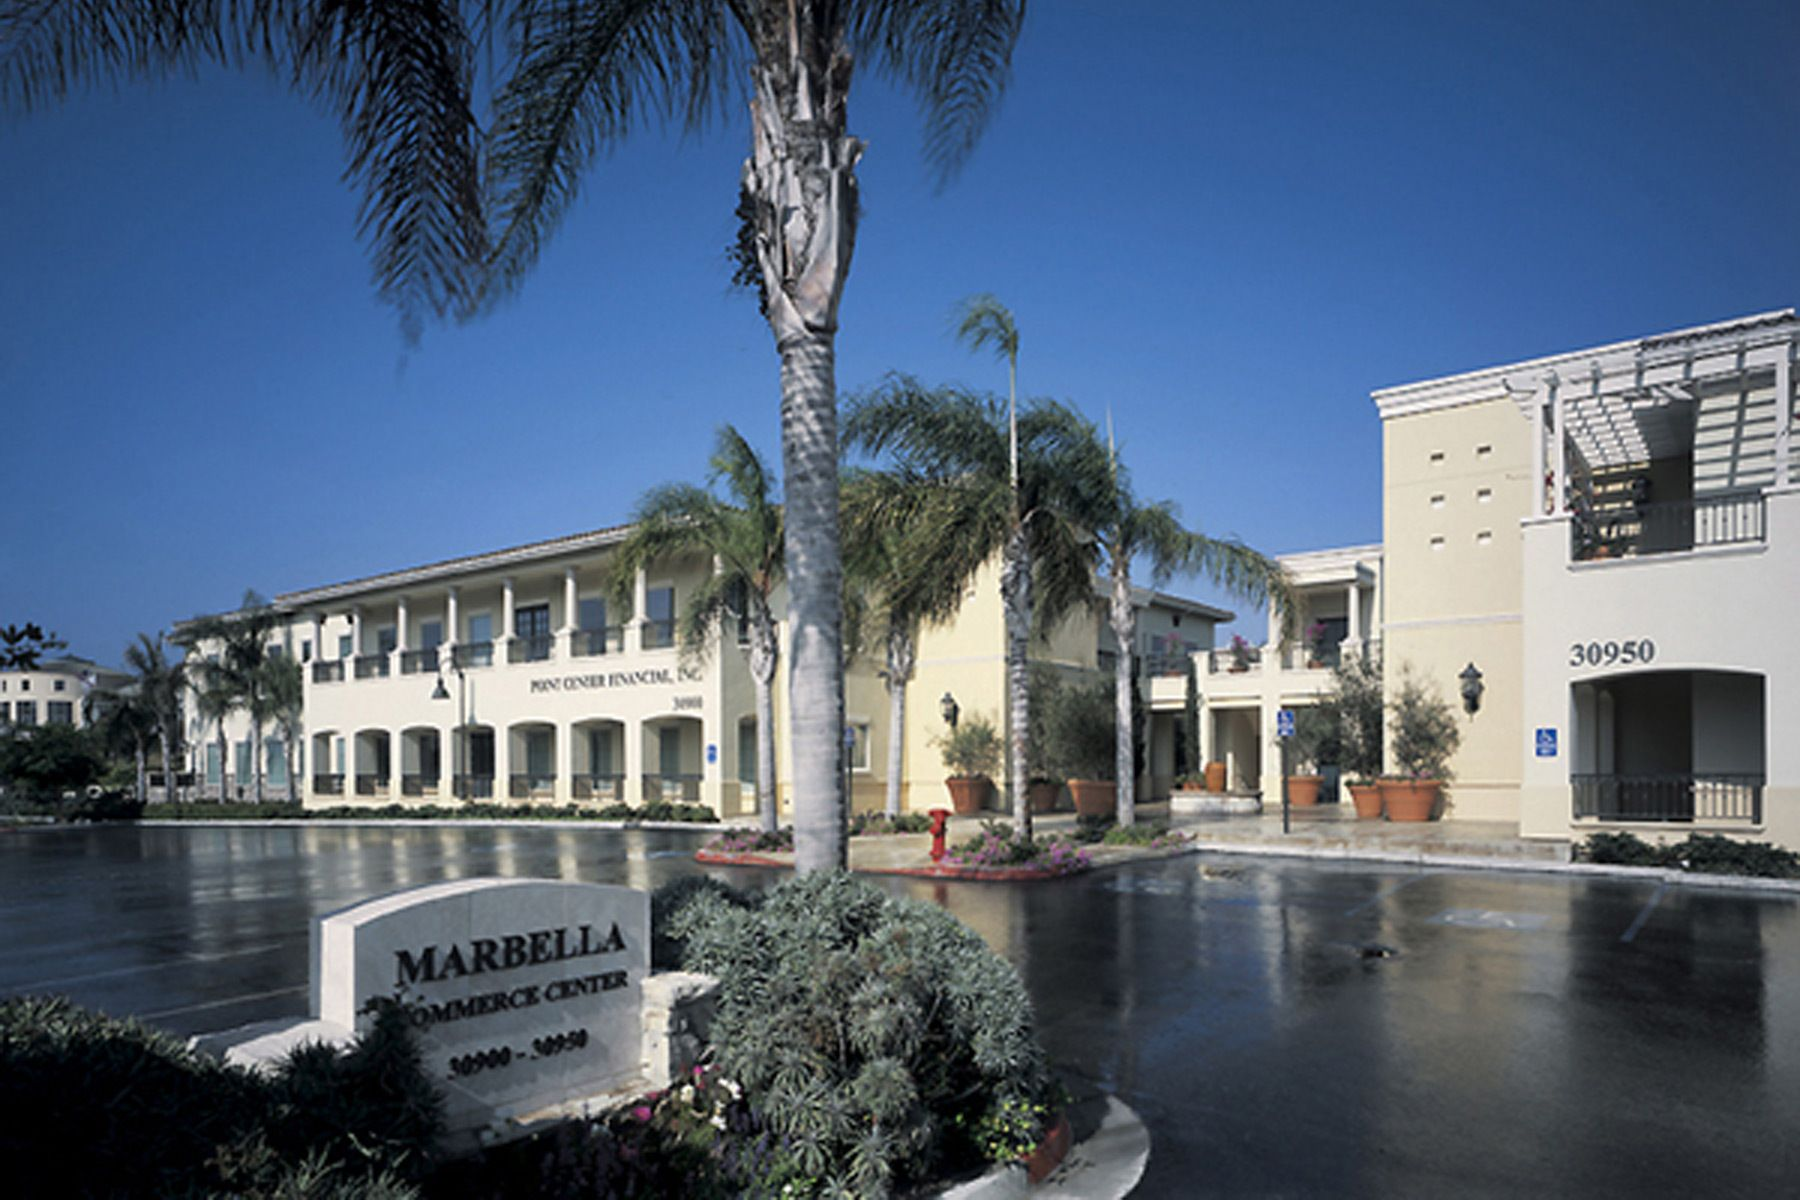 Marbella Commerce Center